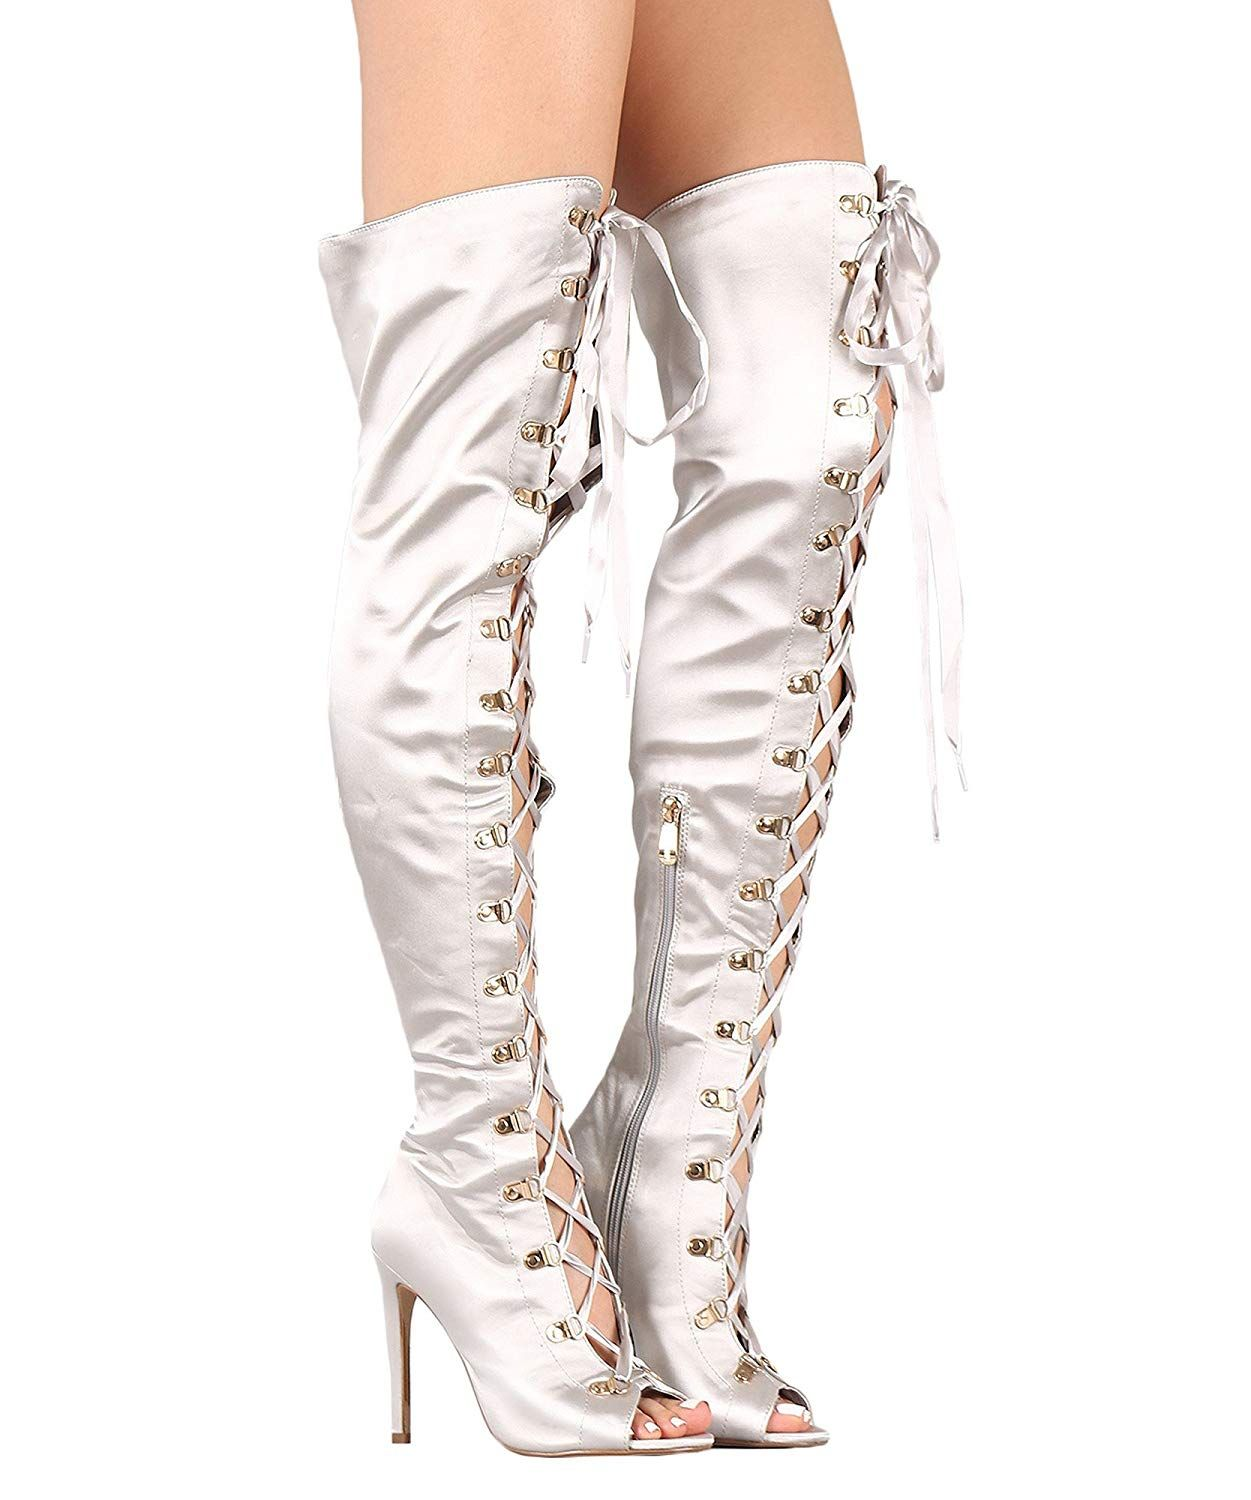 fdae5c99e4d RF ROOM OF FASHION Women s Lace up Sexy High Heel Over The Knee Thigh High  Boots     Very kind of your presence to drop by to view our photo.